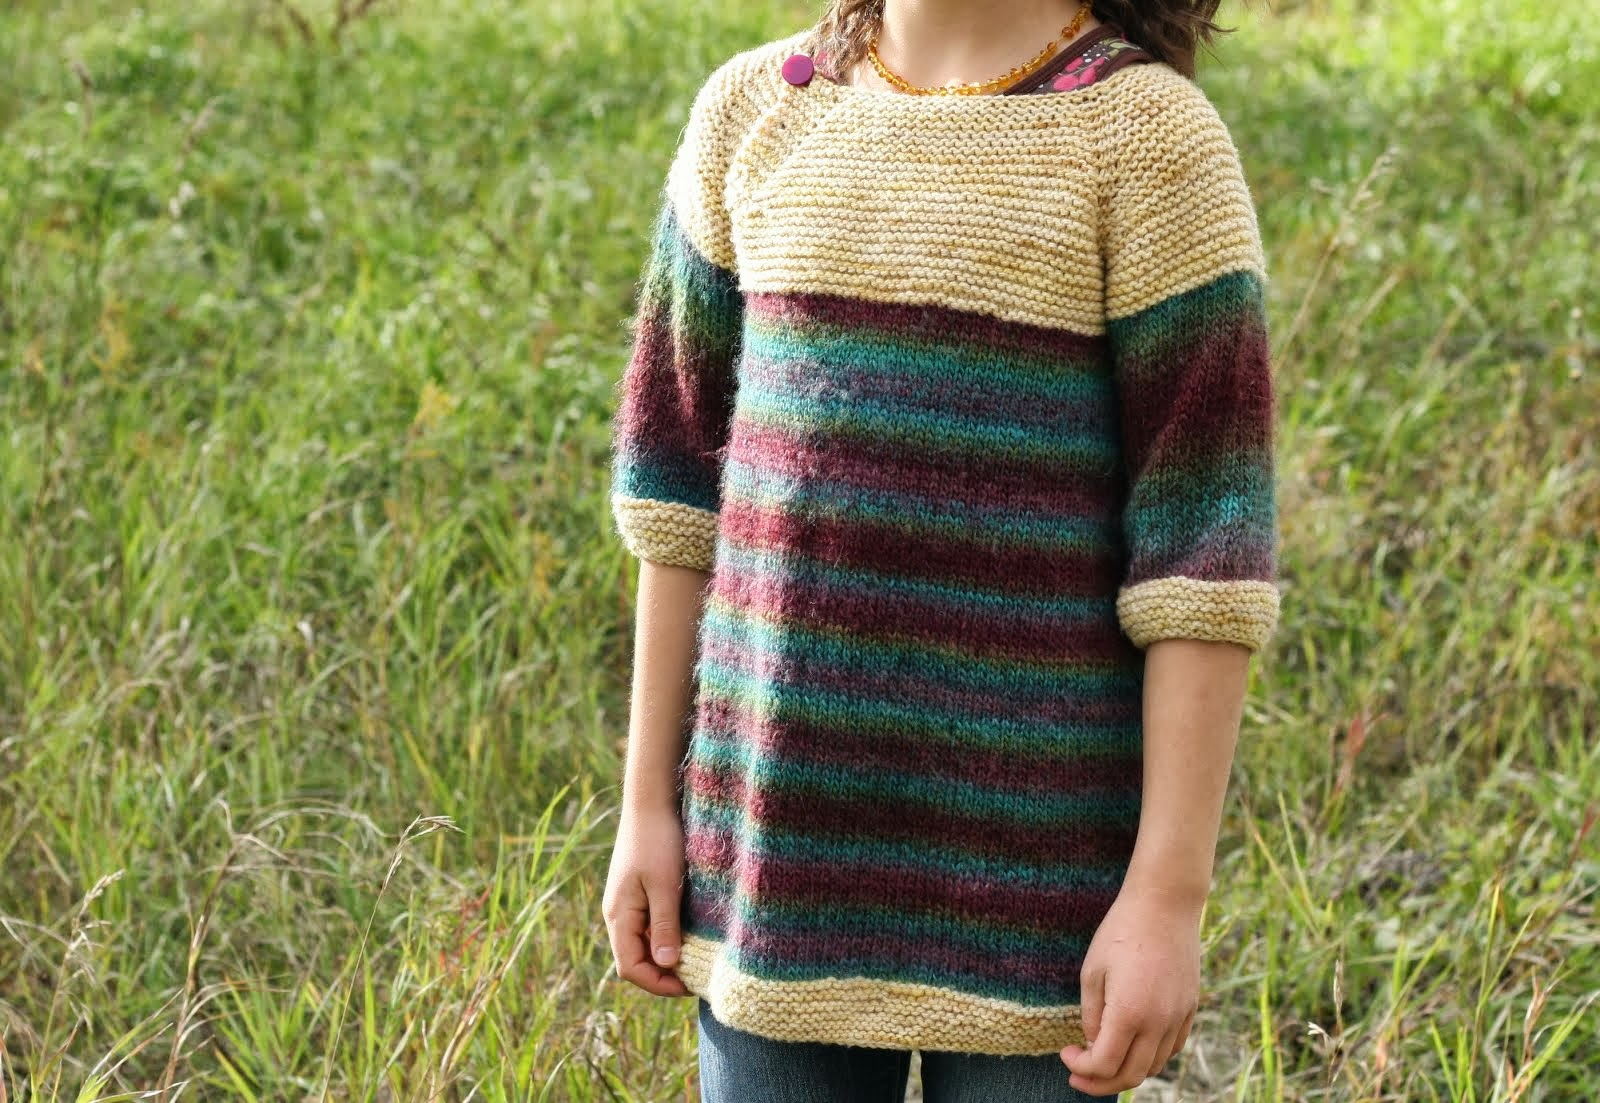 My Knit and Crochet Patterns